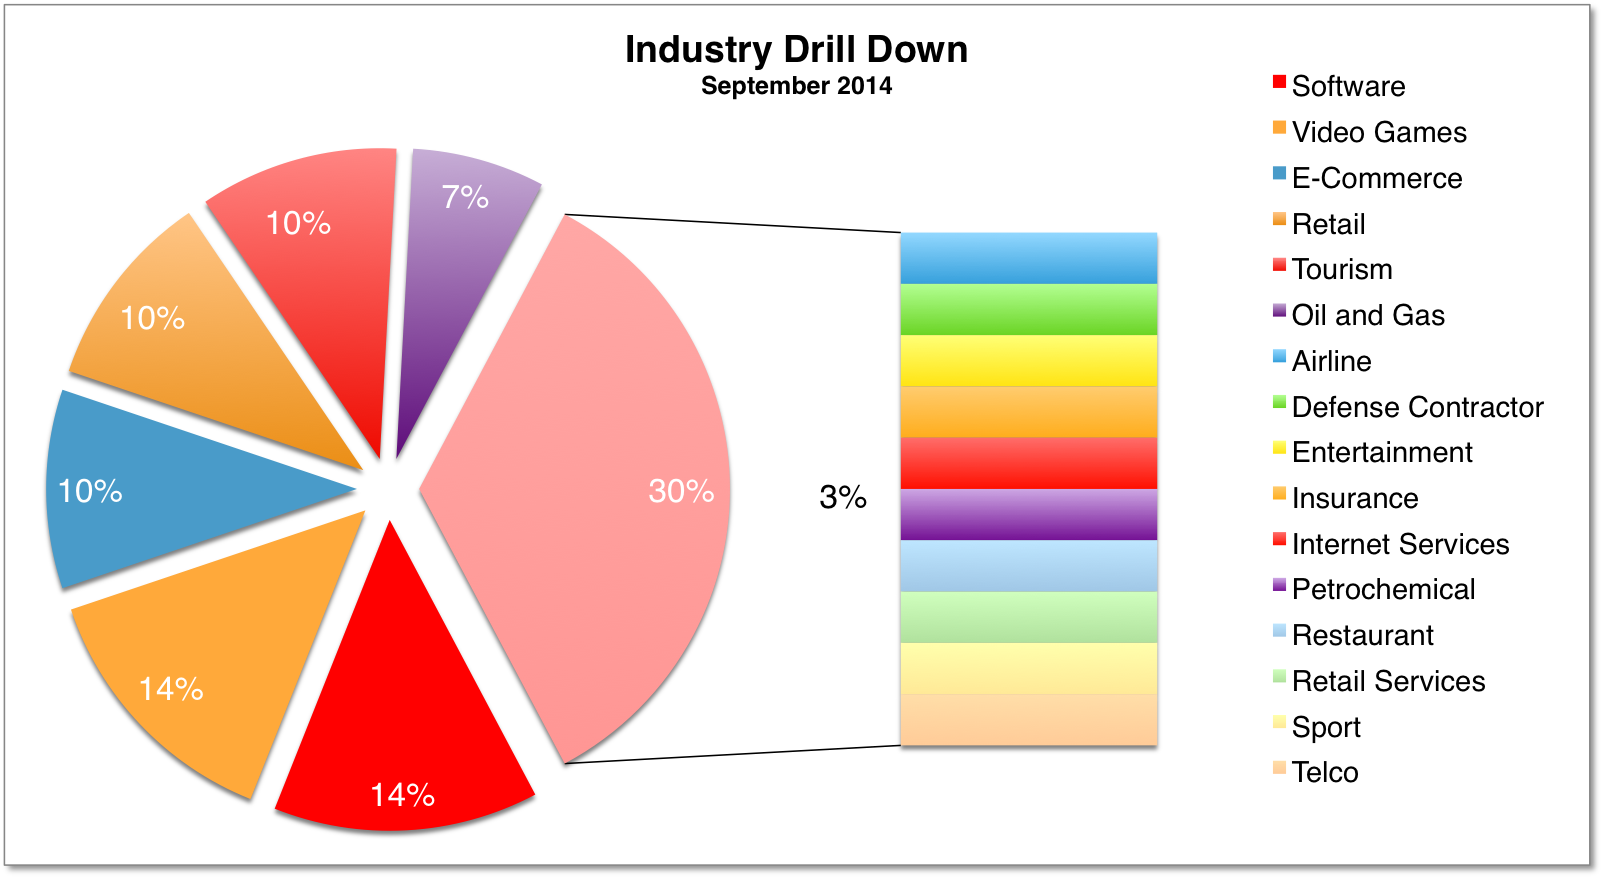 Industry Drill Down Sep 2014